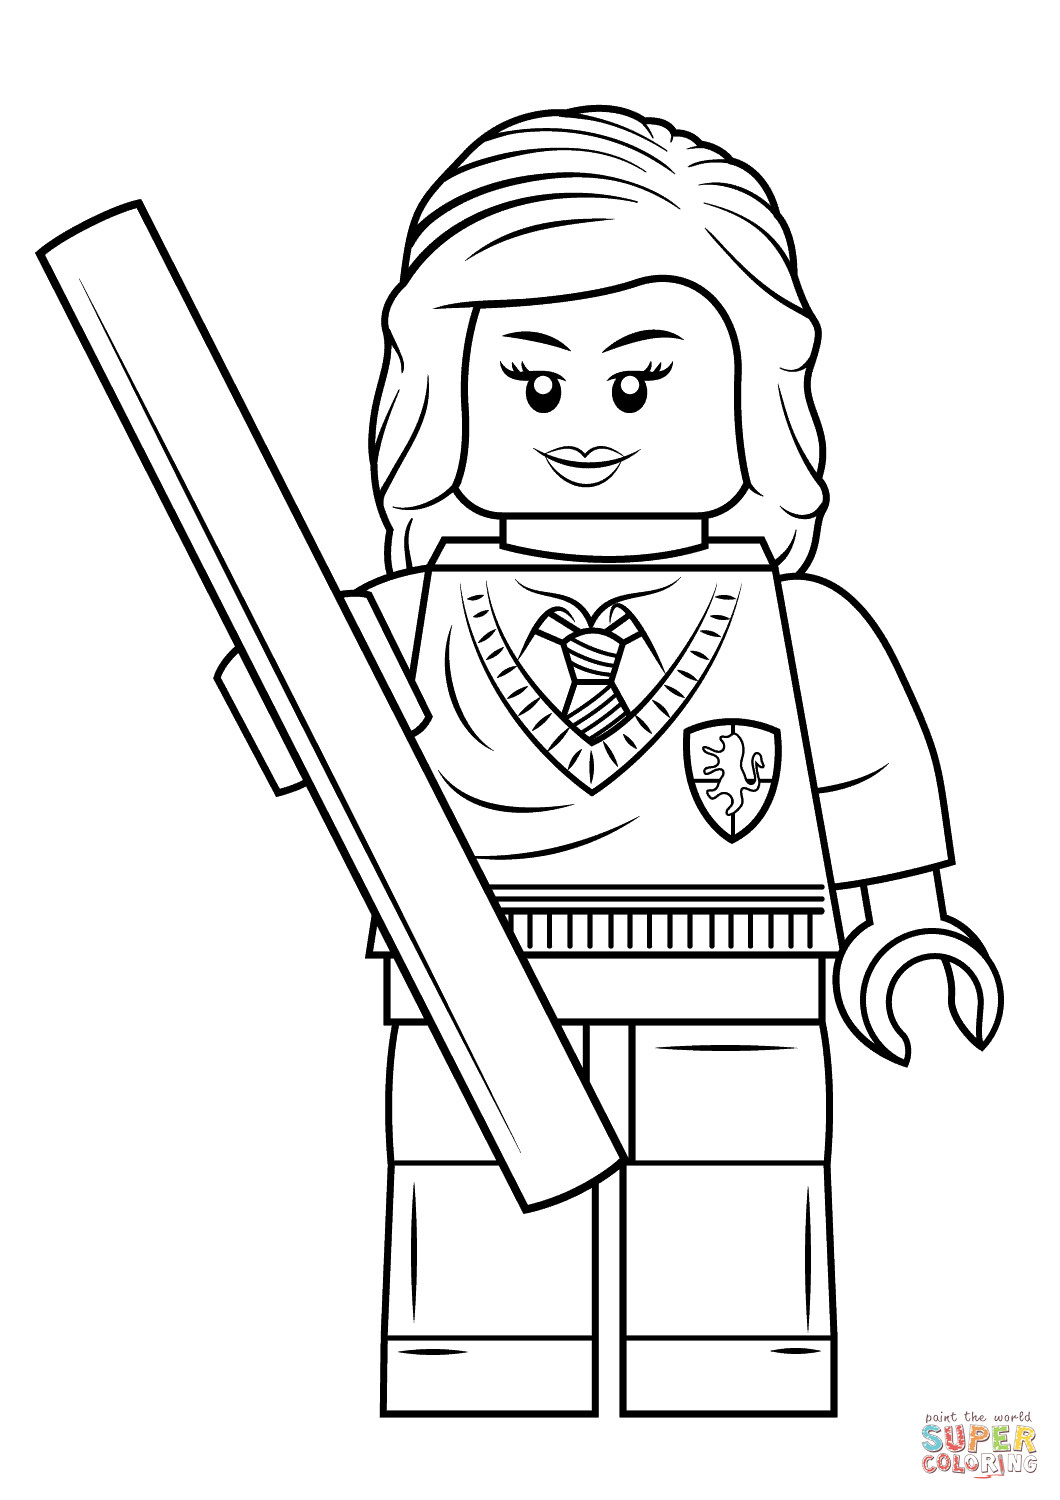 1060x1500 Lego Person Coloring Pages Reevolveclothing Com